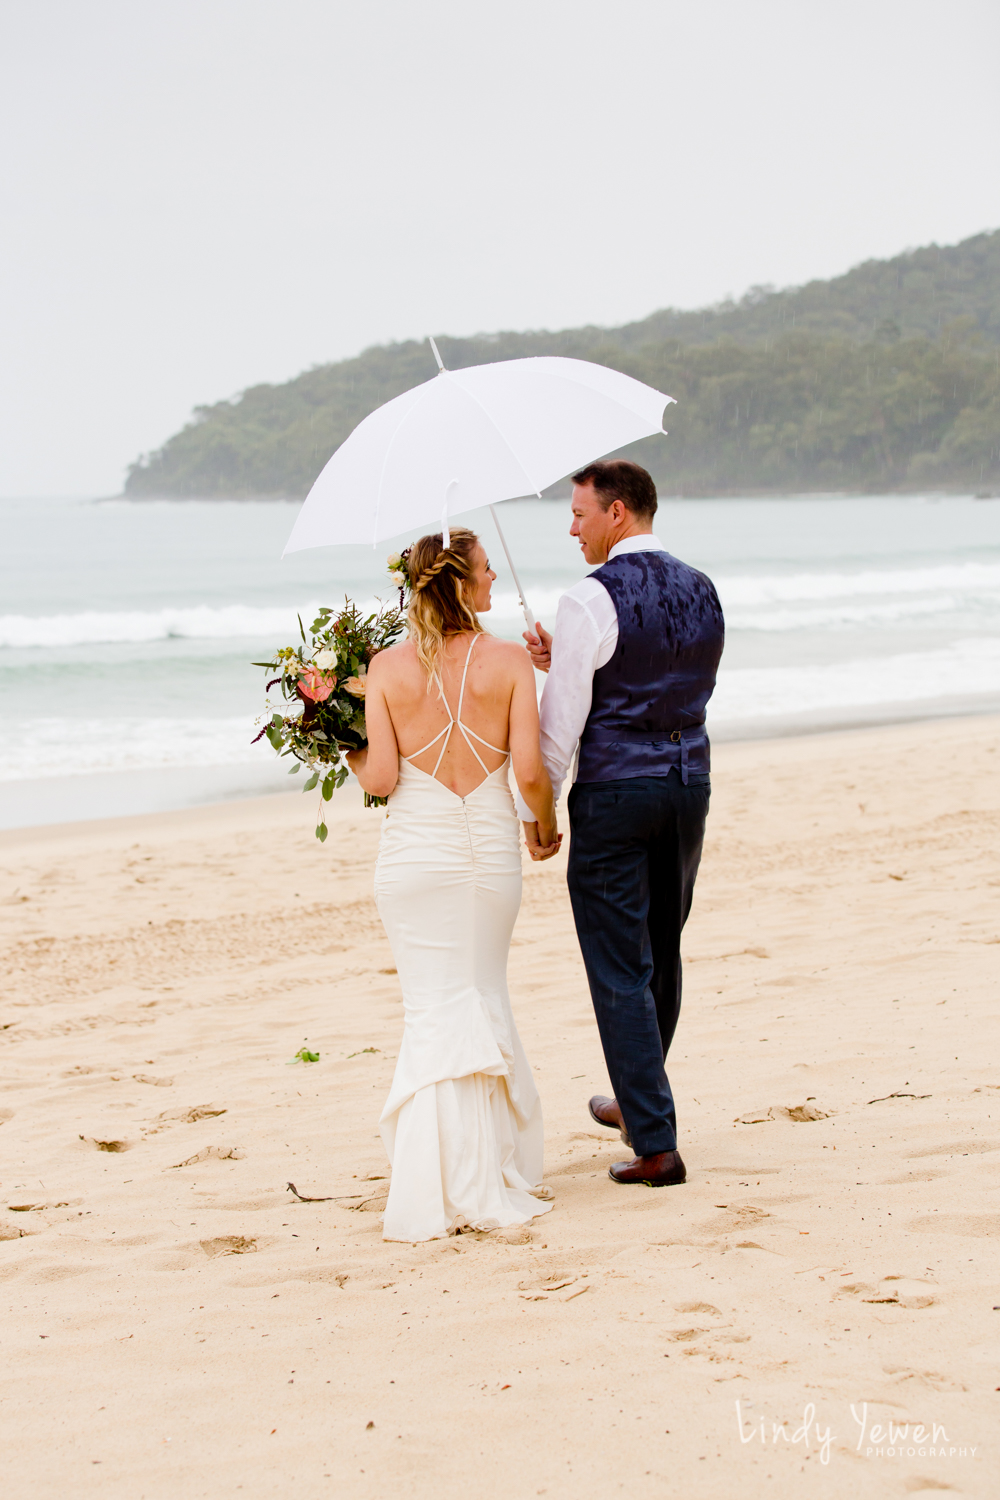 noosa-wedding-photographers-Emmy-Nathan 323.jpg